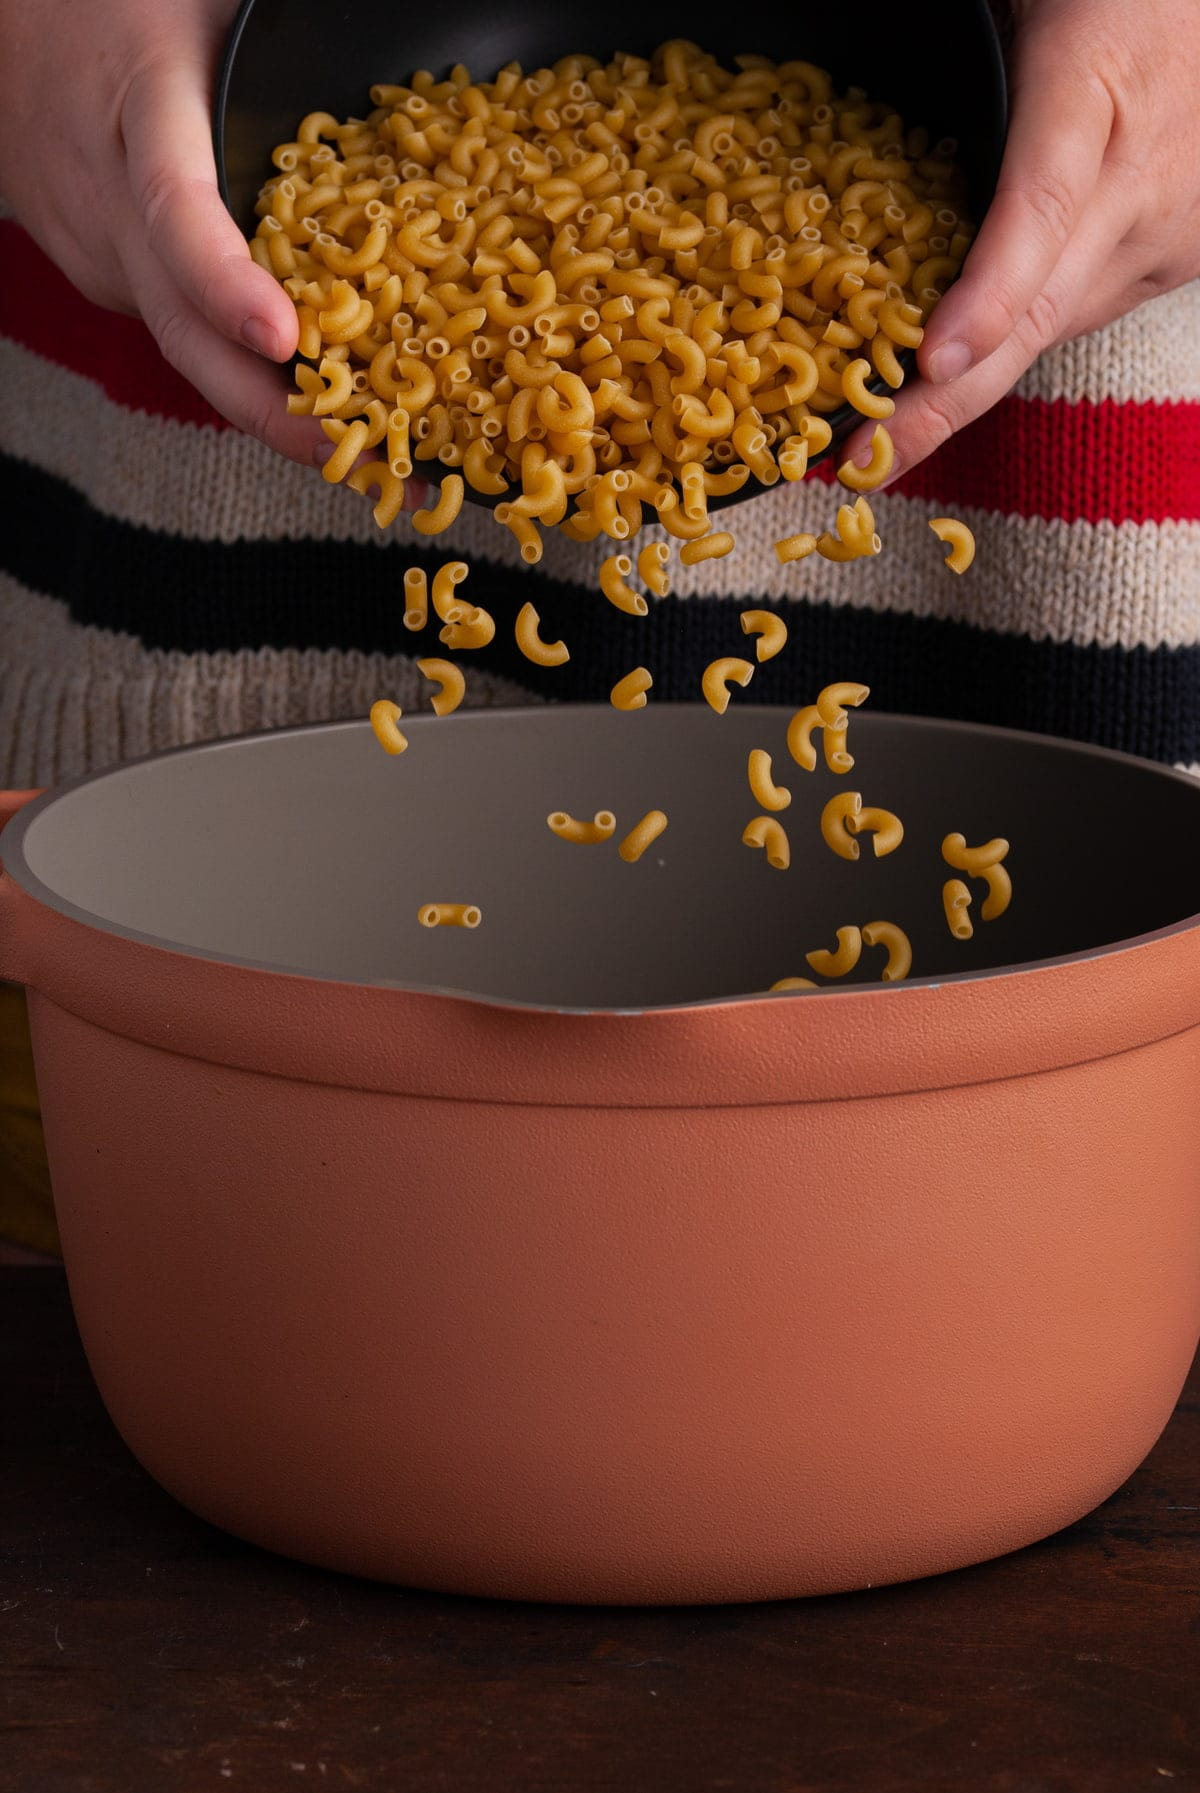 pouring macaroni into a big pot of boiling water